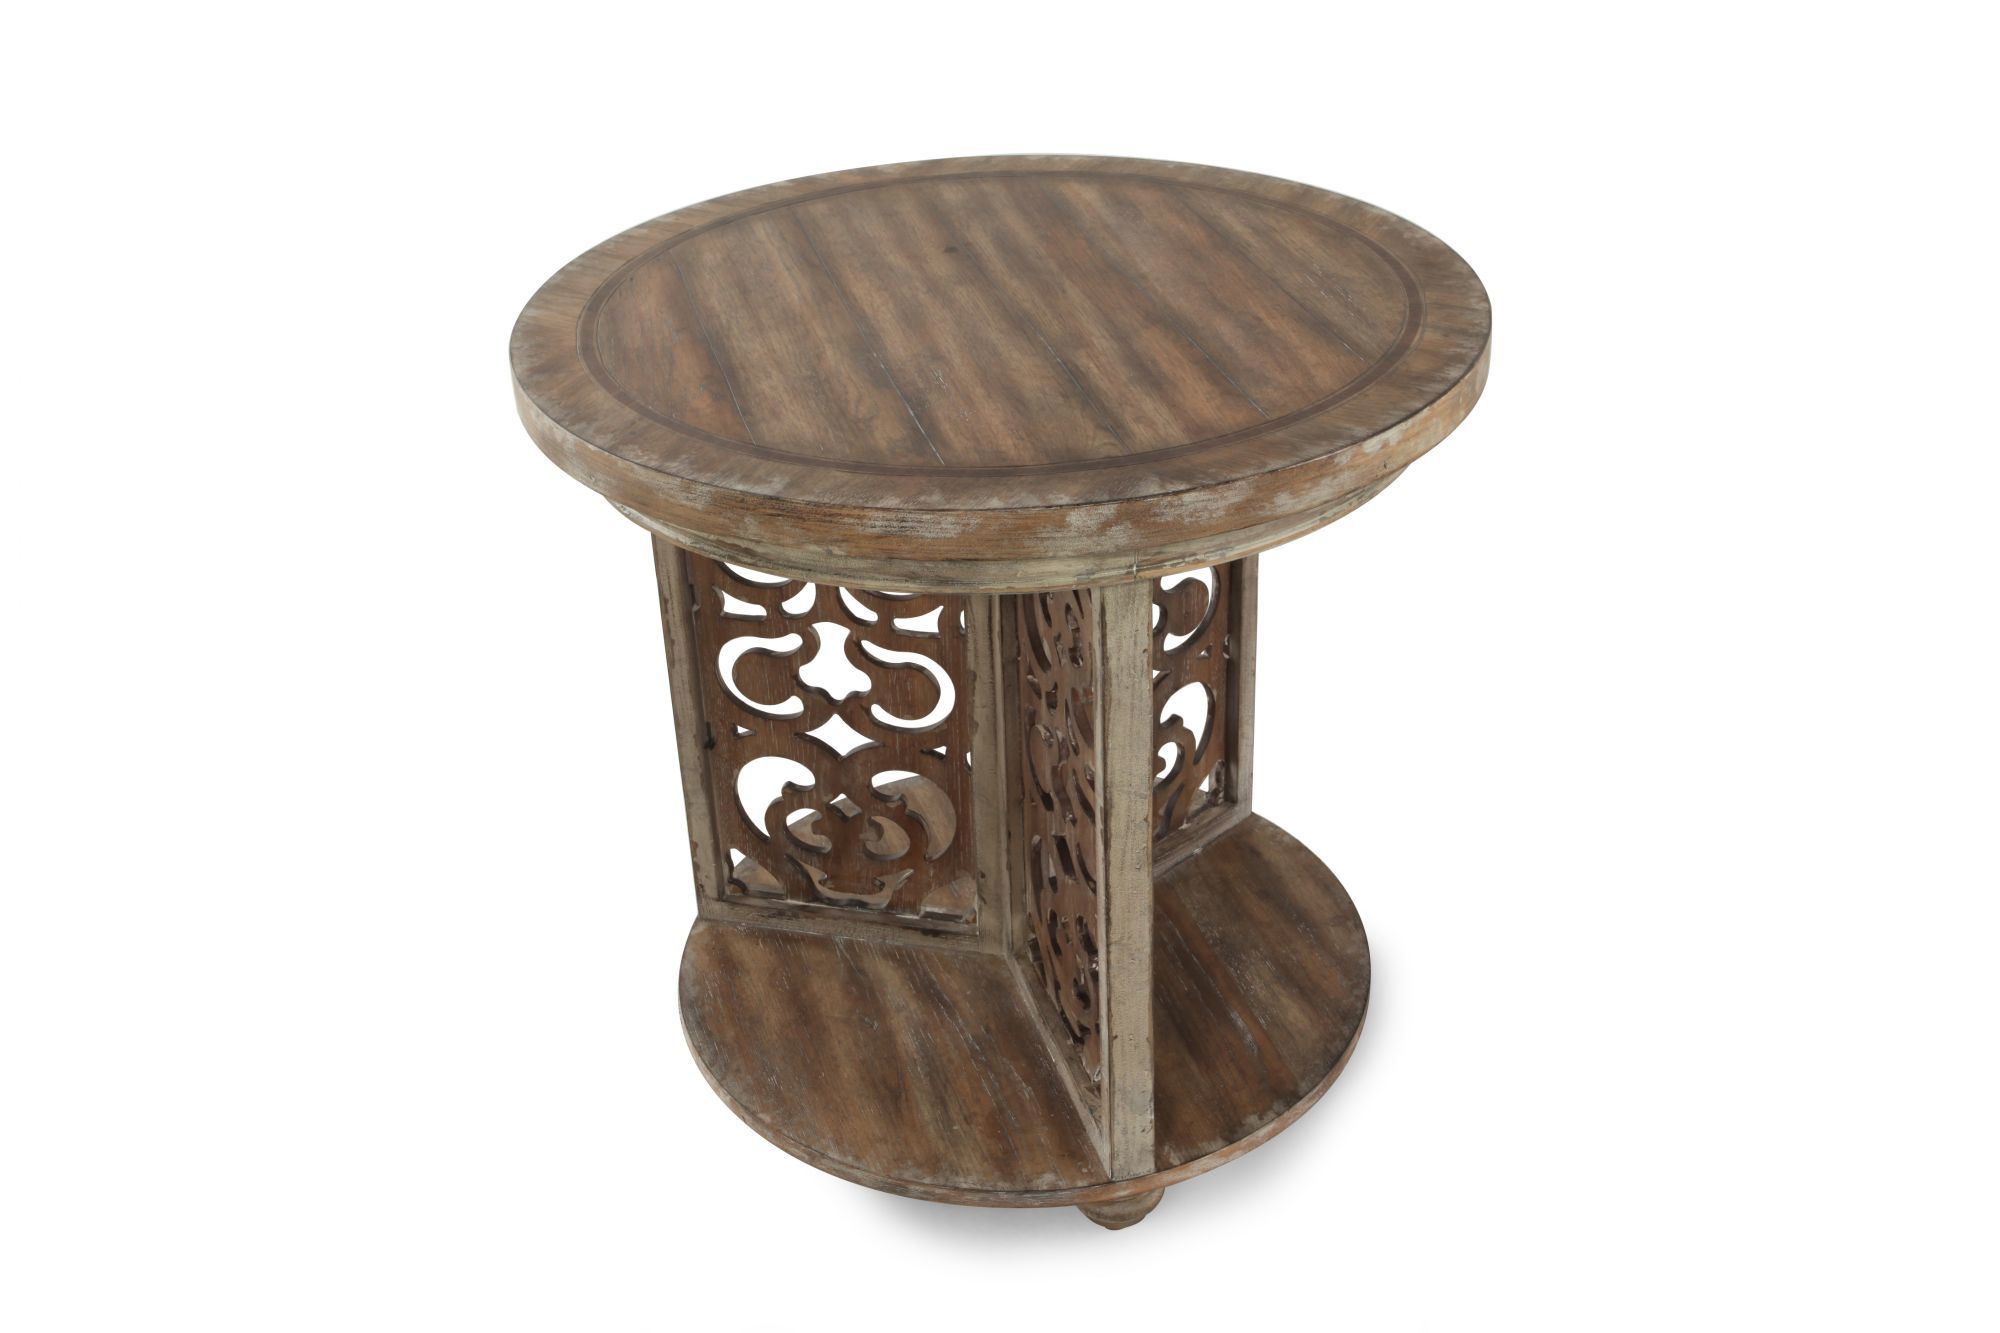 traditional scroll round accent table brown mathis brothers hook iron and chairs shallow cabinet modern wood coffee runner bar style black pipe nesting set plexiglass home